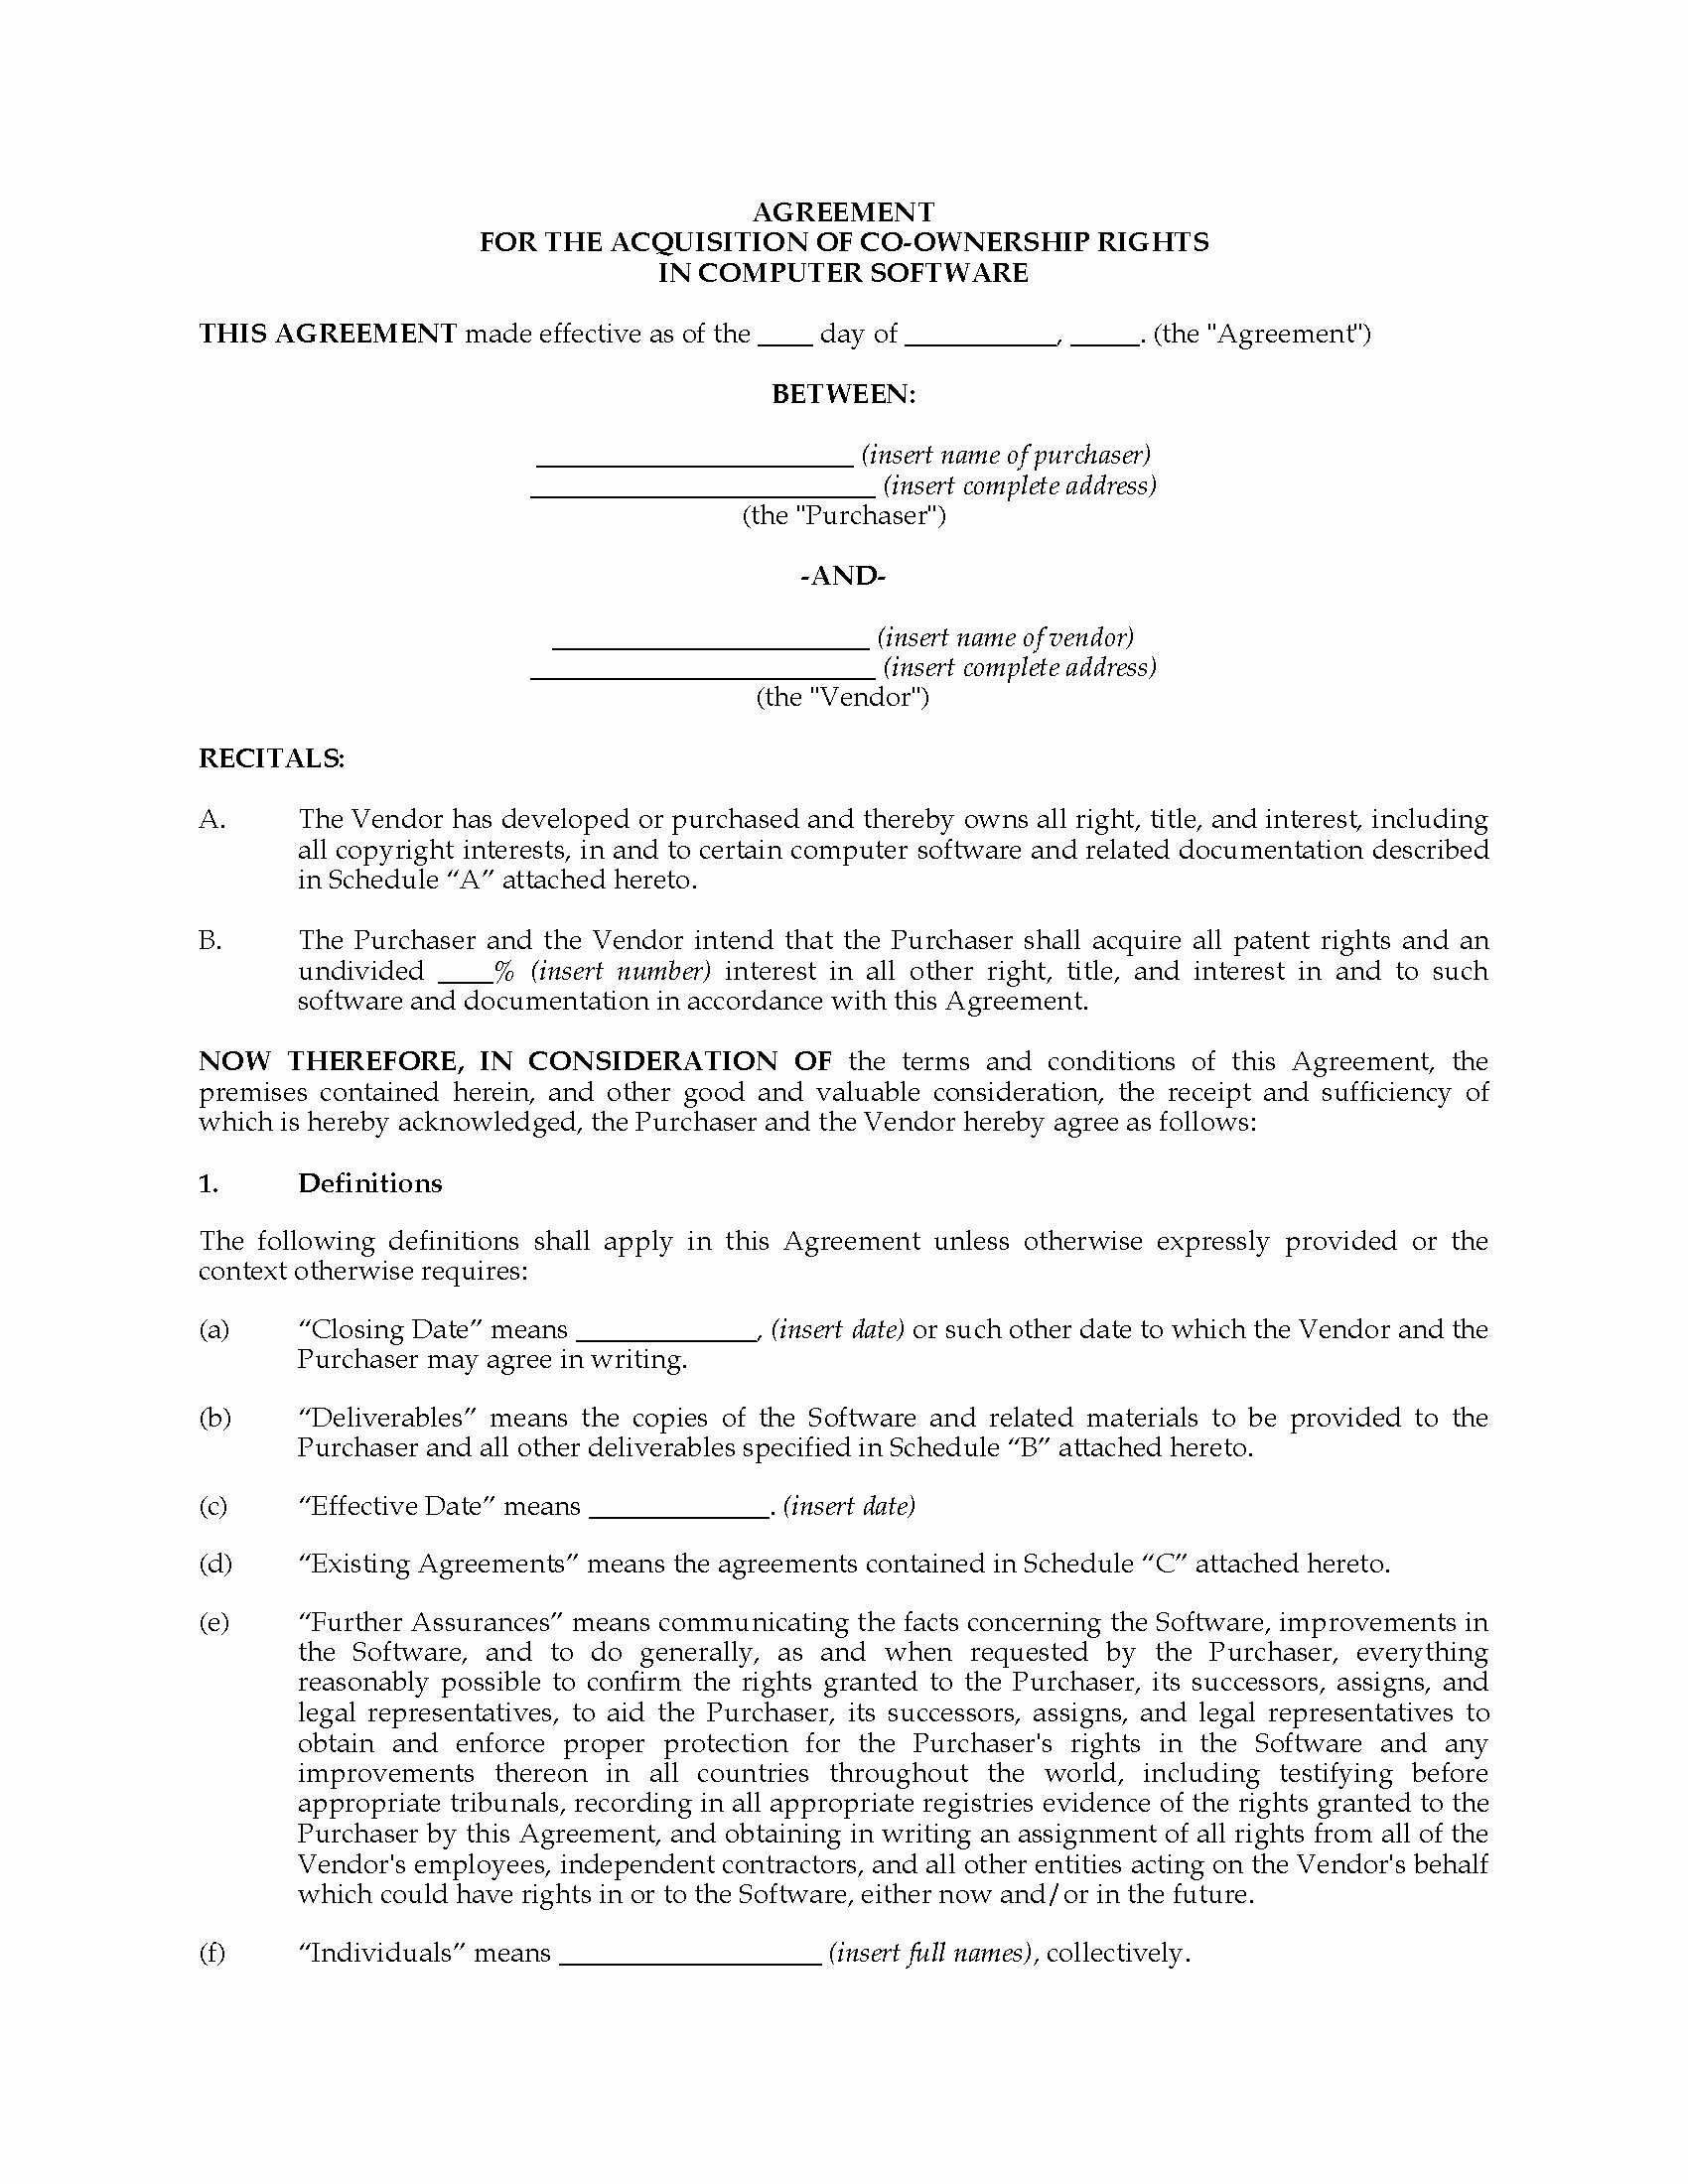 Co-ownership Agreement Real Estate Template Best Of Canada Acquisition Agreement for Joint Ownership Of